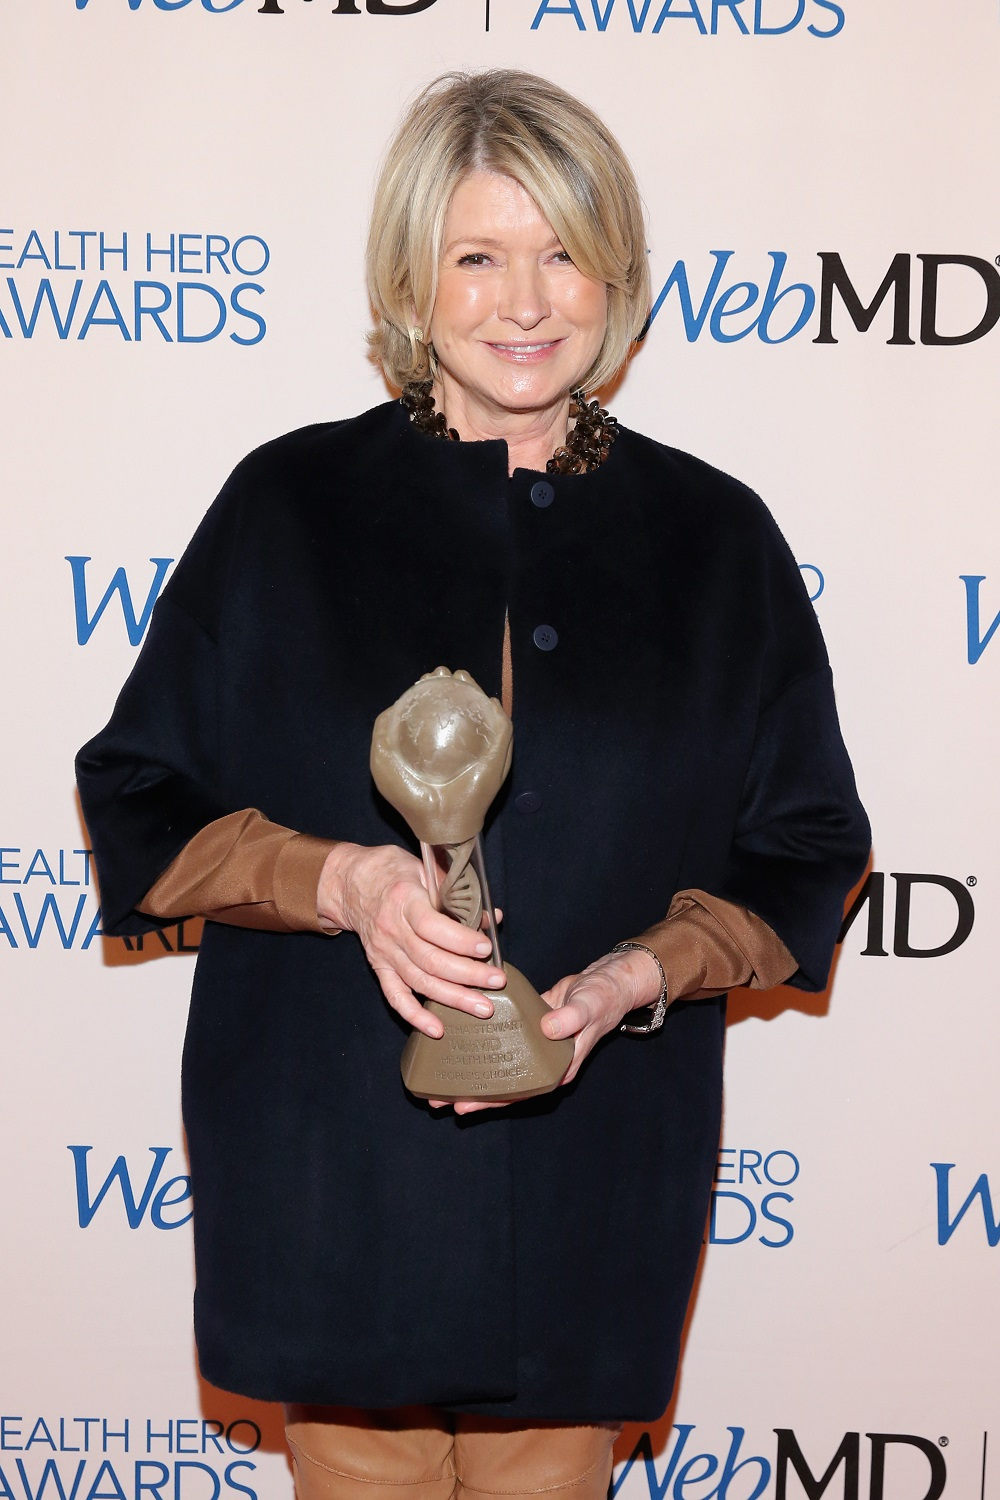 NEW YORK, NY - NOVEMBER 06:  Martha Stewart poses with an award backstage at the 2014 Health Hero Awards hosted by WebMD at Times Center on November 6, 2014 in New York City.  (Photo by Neilson Barnard/Getty Images for WebMD)